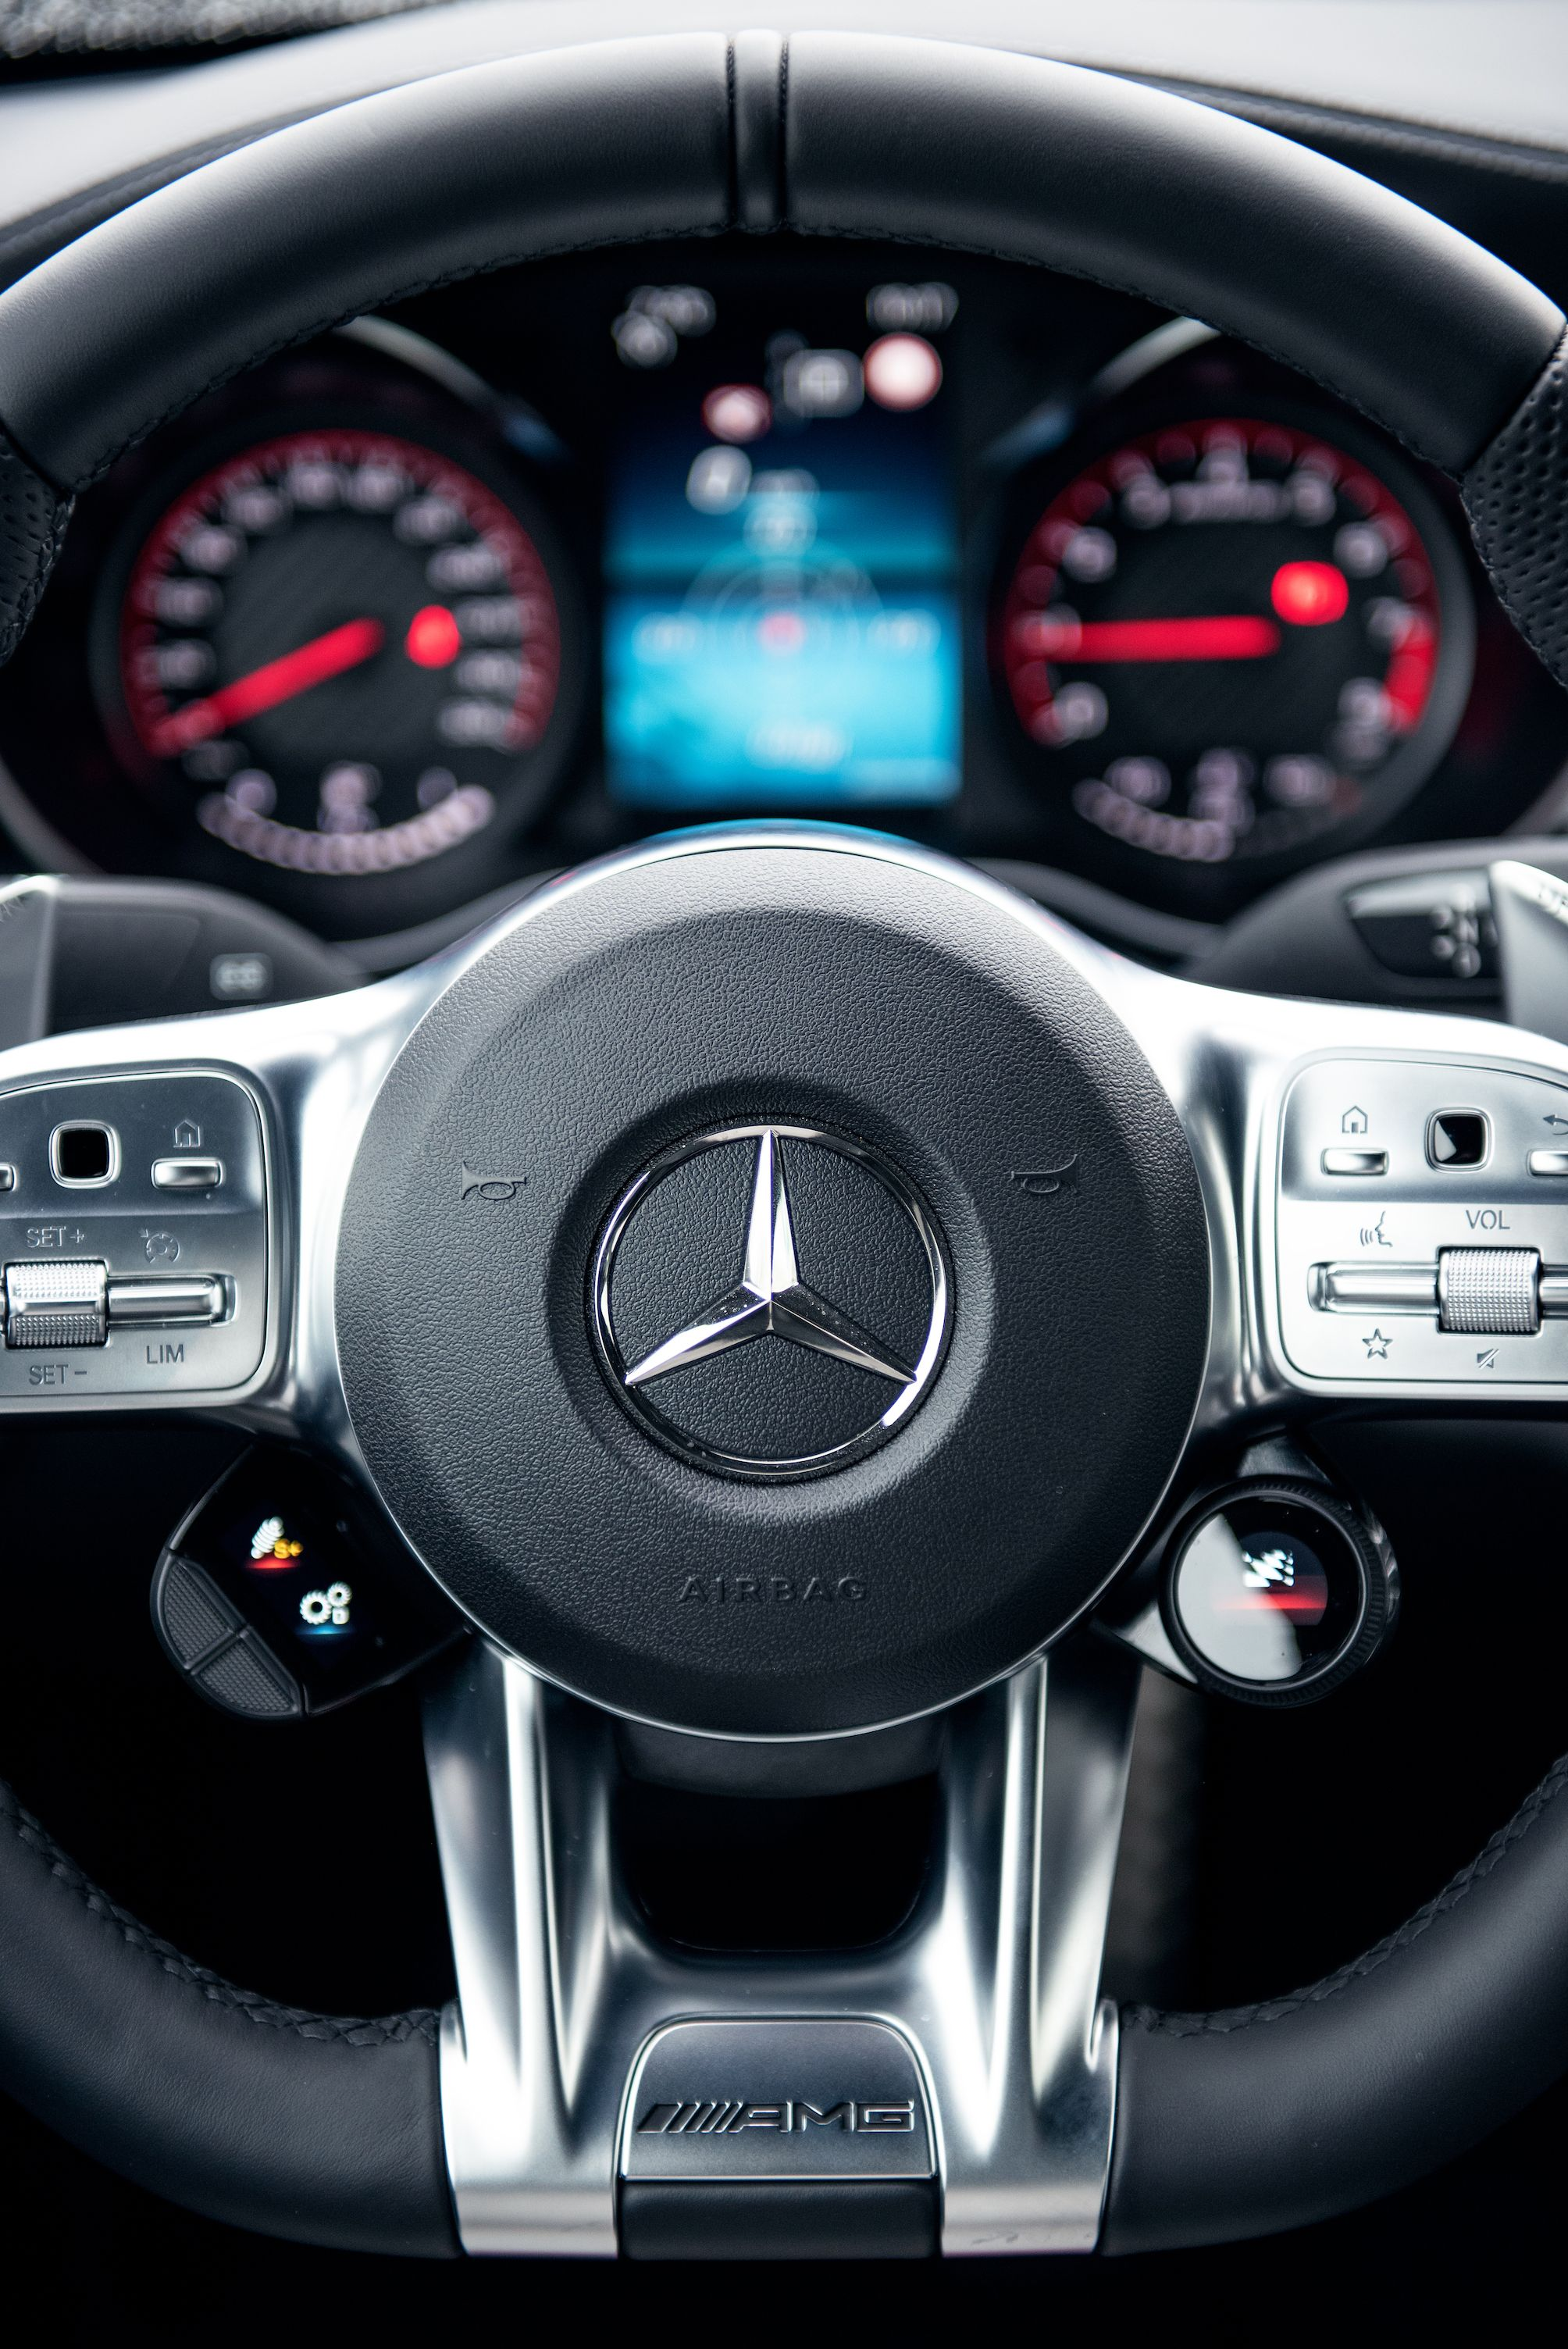 This Is The Steering Wheel Of The Mercedes Amg C 63 S All The Driving Performance You Need At The Tip Of Your Fi Mercedes Truck Mercedes Car Mercedes Benz Amg